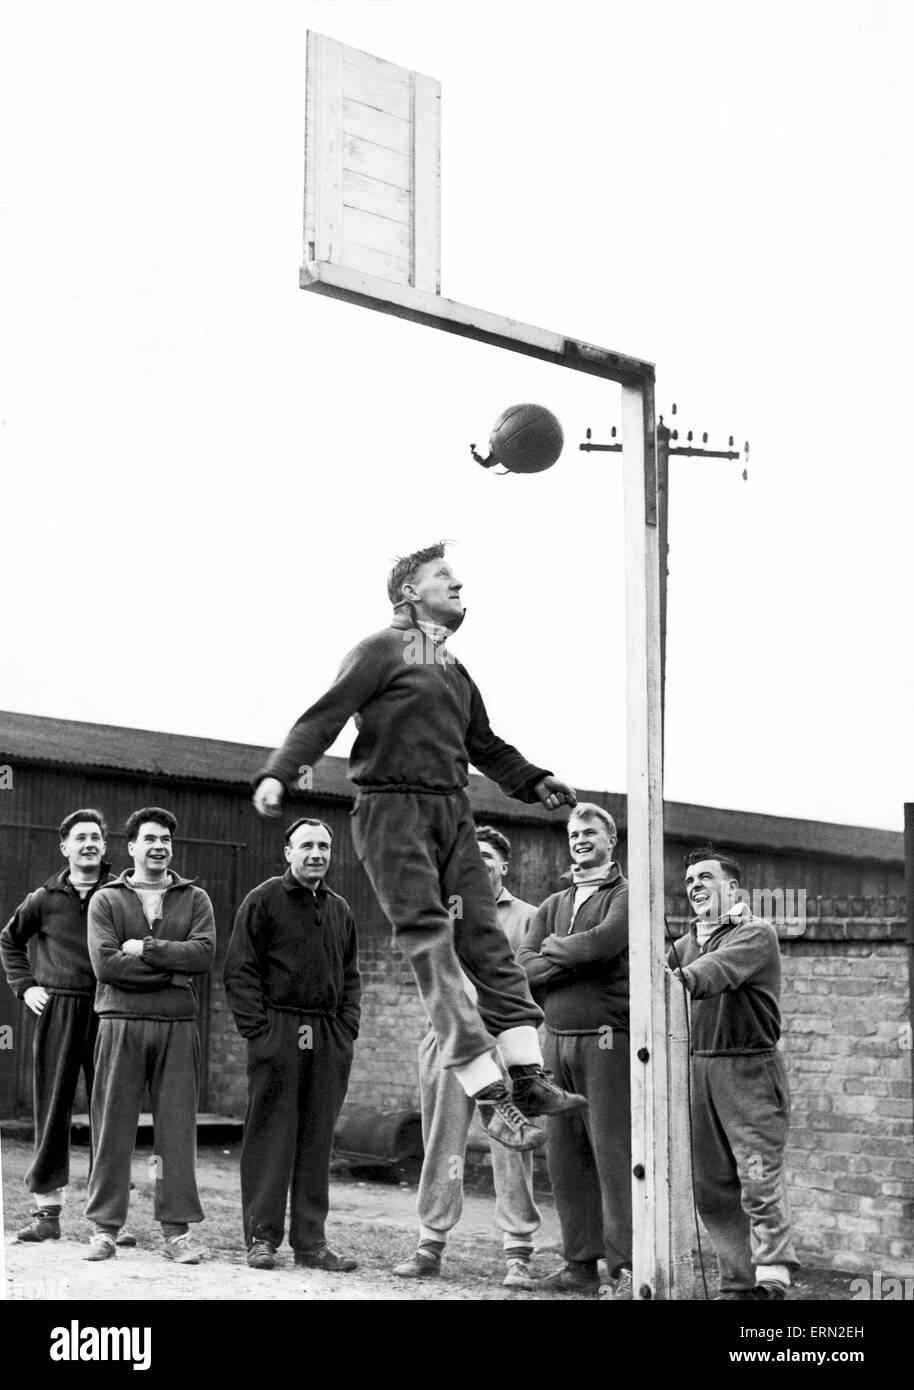 Birmingham City training. 26th November 1953. - Stock Image